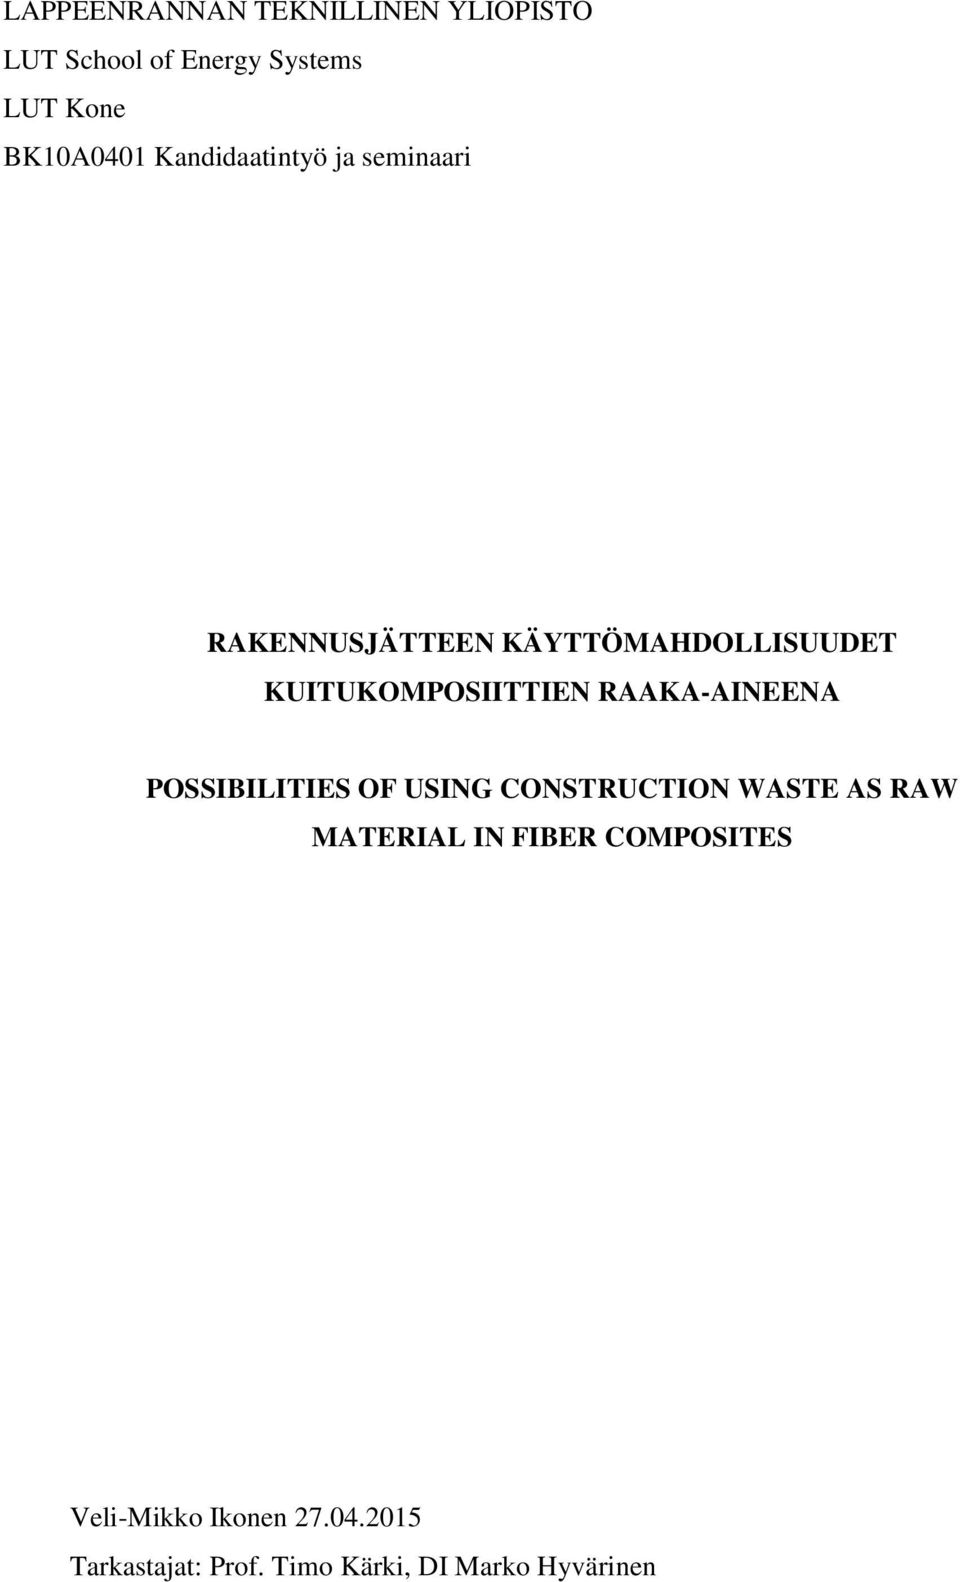 RAAKA-AINEENA POSSIBILITIES OF USING CONSTRUCTION WASTE AS RAW MATERIAL IN FIBER